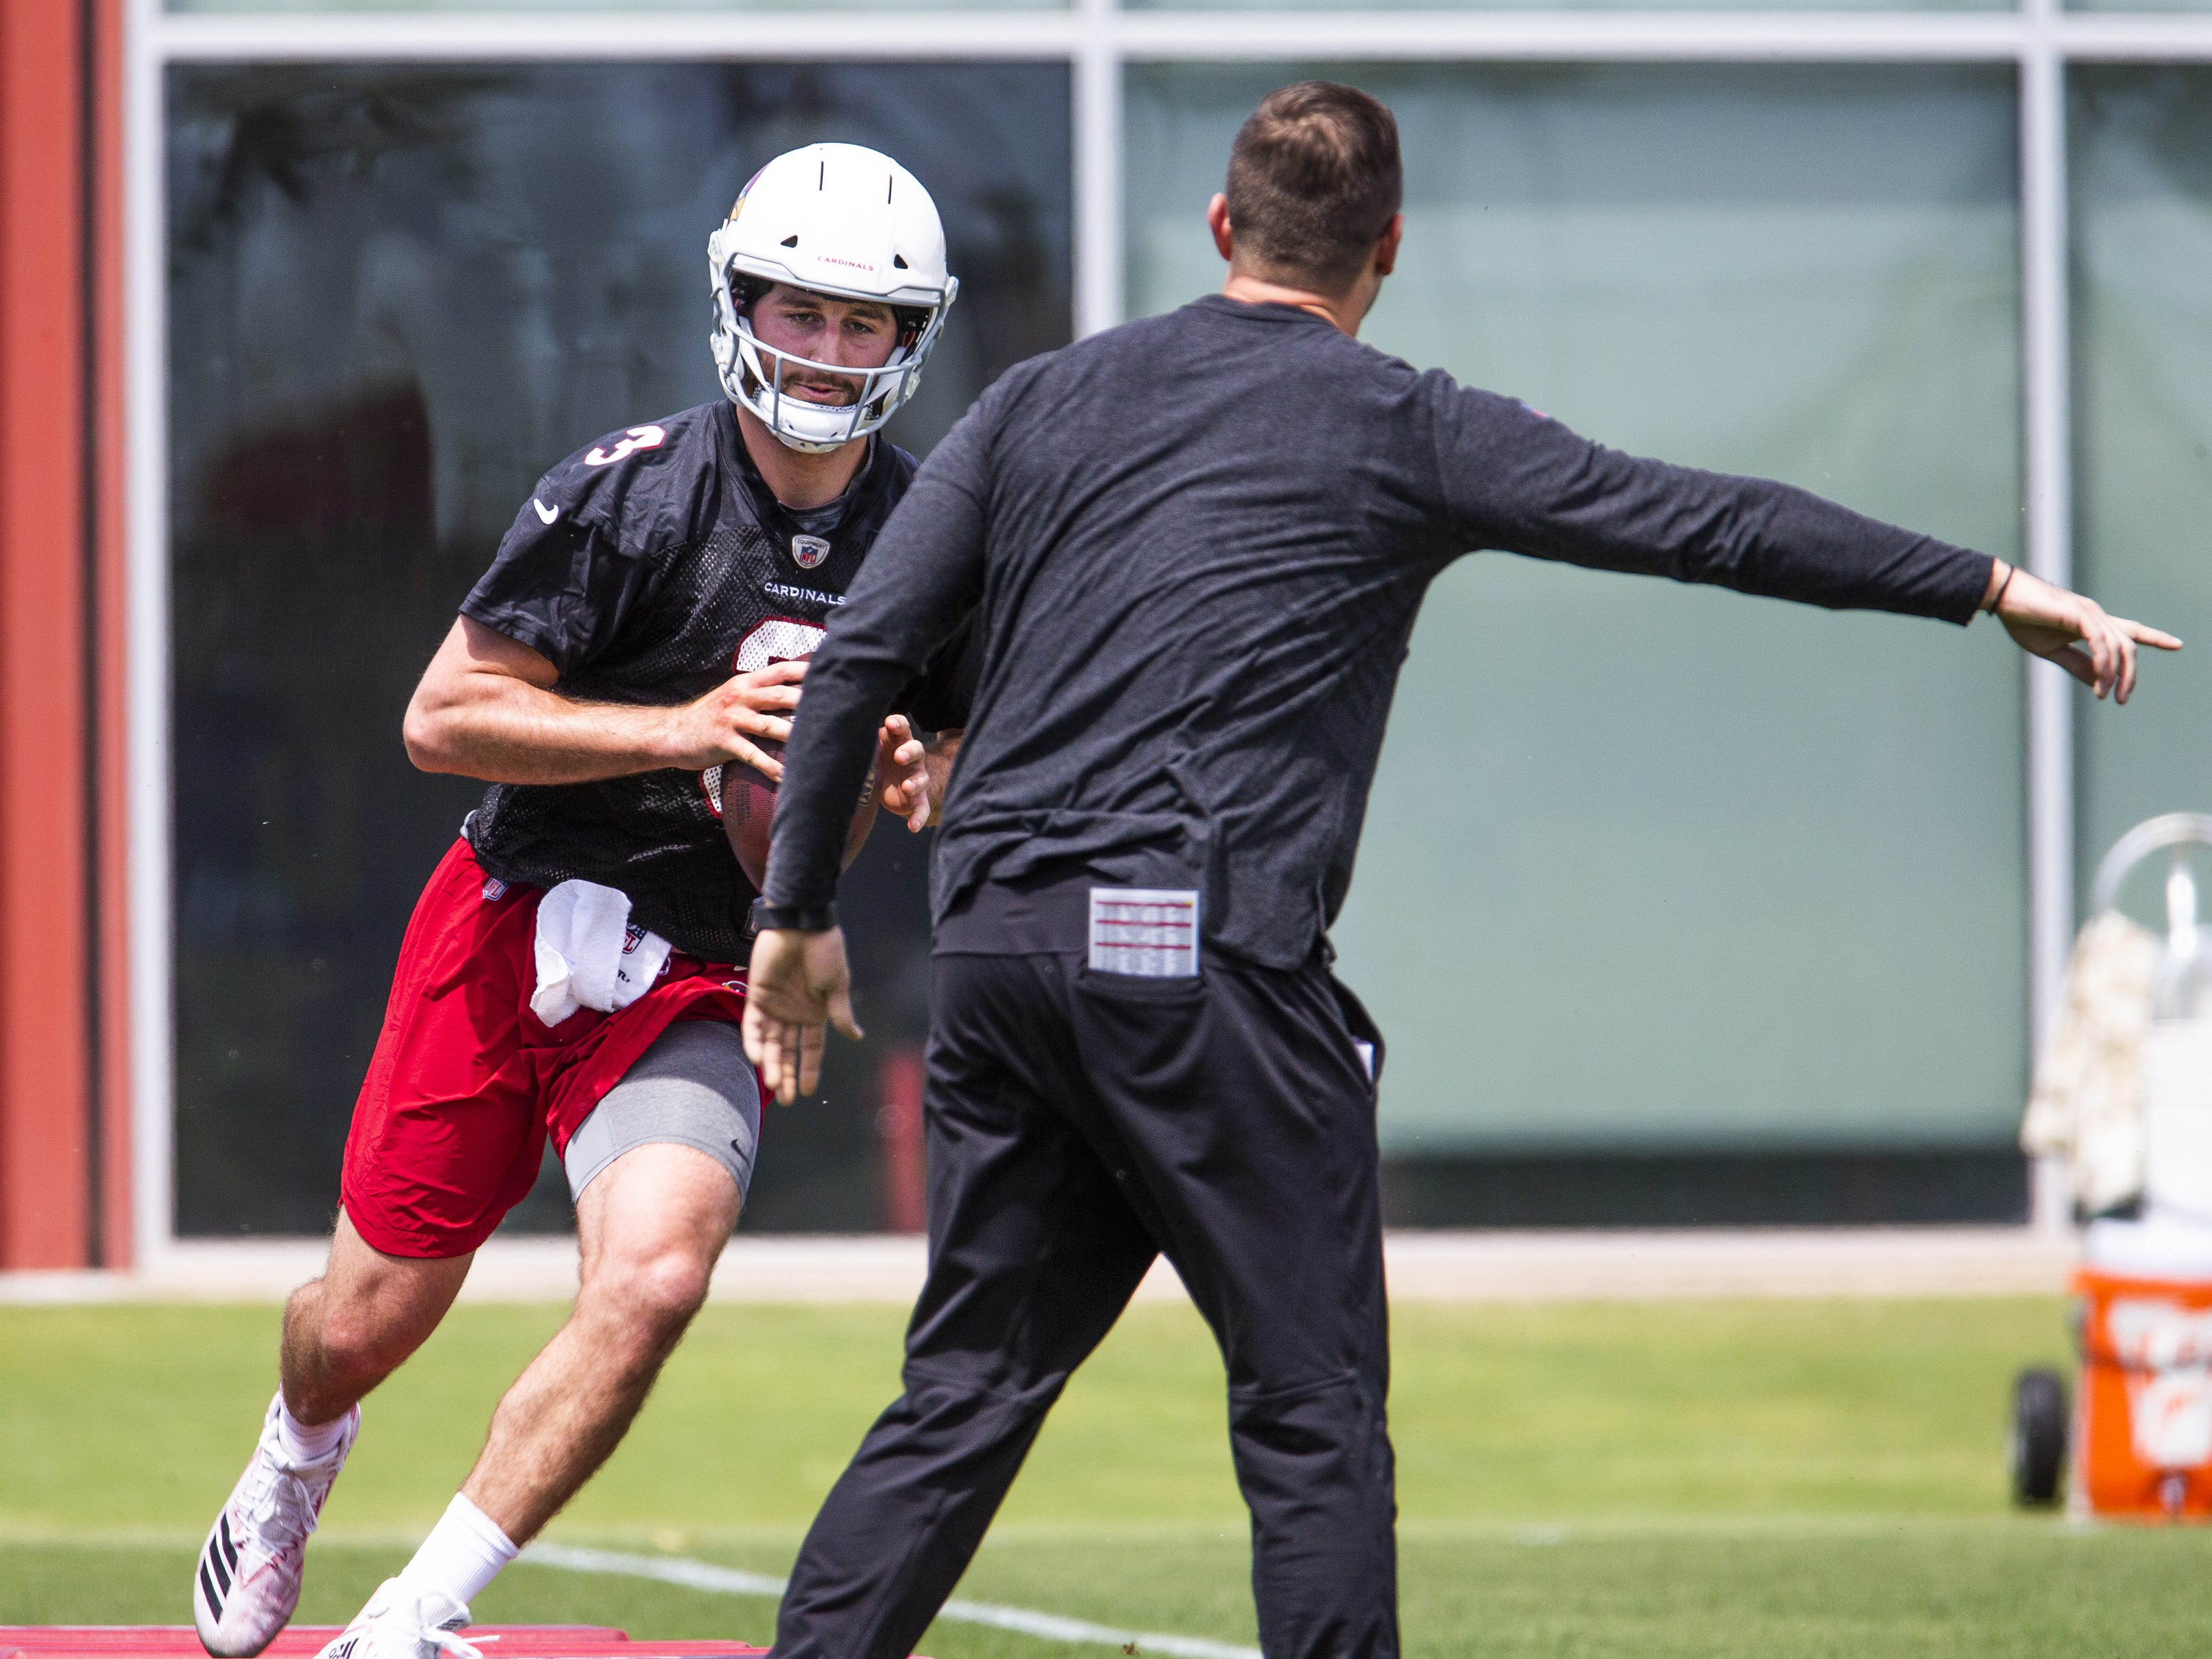 Arizona Cardinals head coach Kliff Kingsbury watches the practice of quarterback Josh Rosen, despite rumors that he's interested in drafting quarterback Kyler Murray, Tuesday, April 23, 2019.